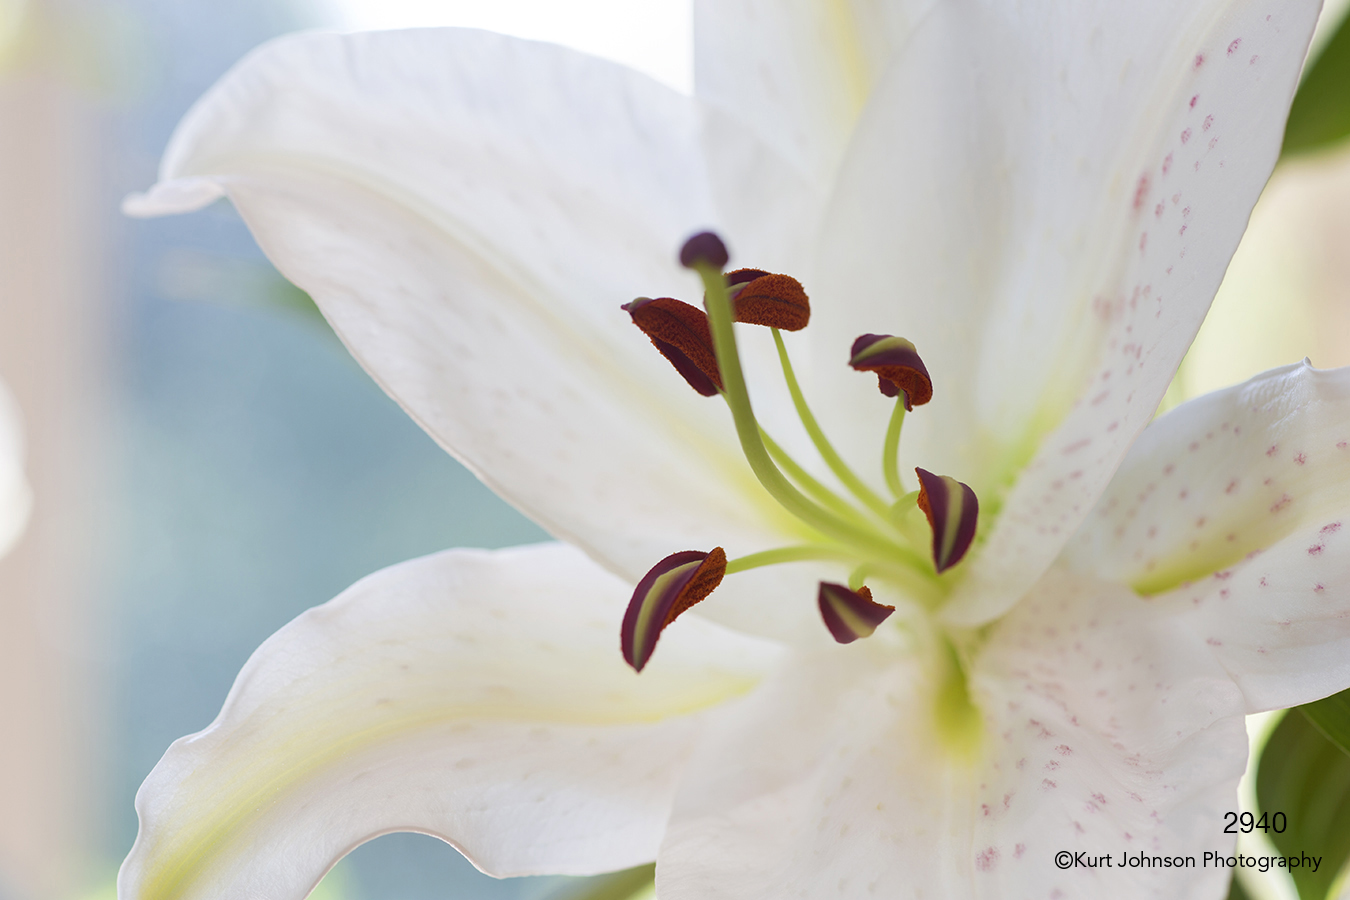 flower white lily close up details